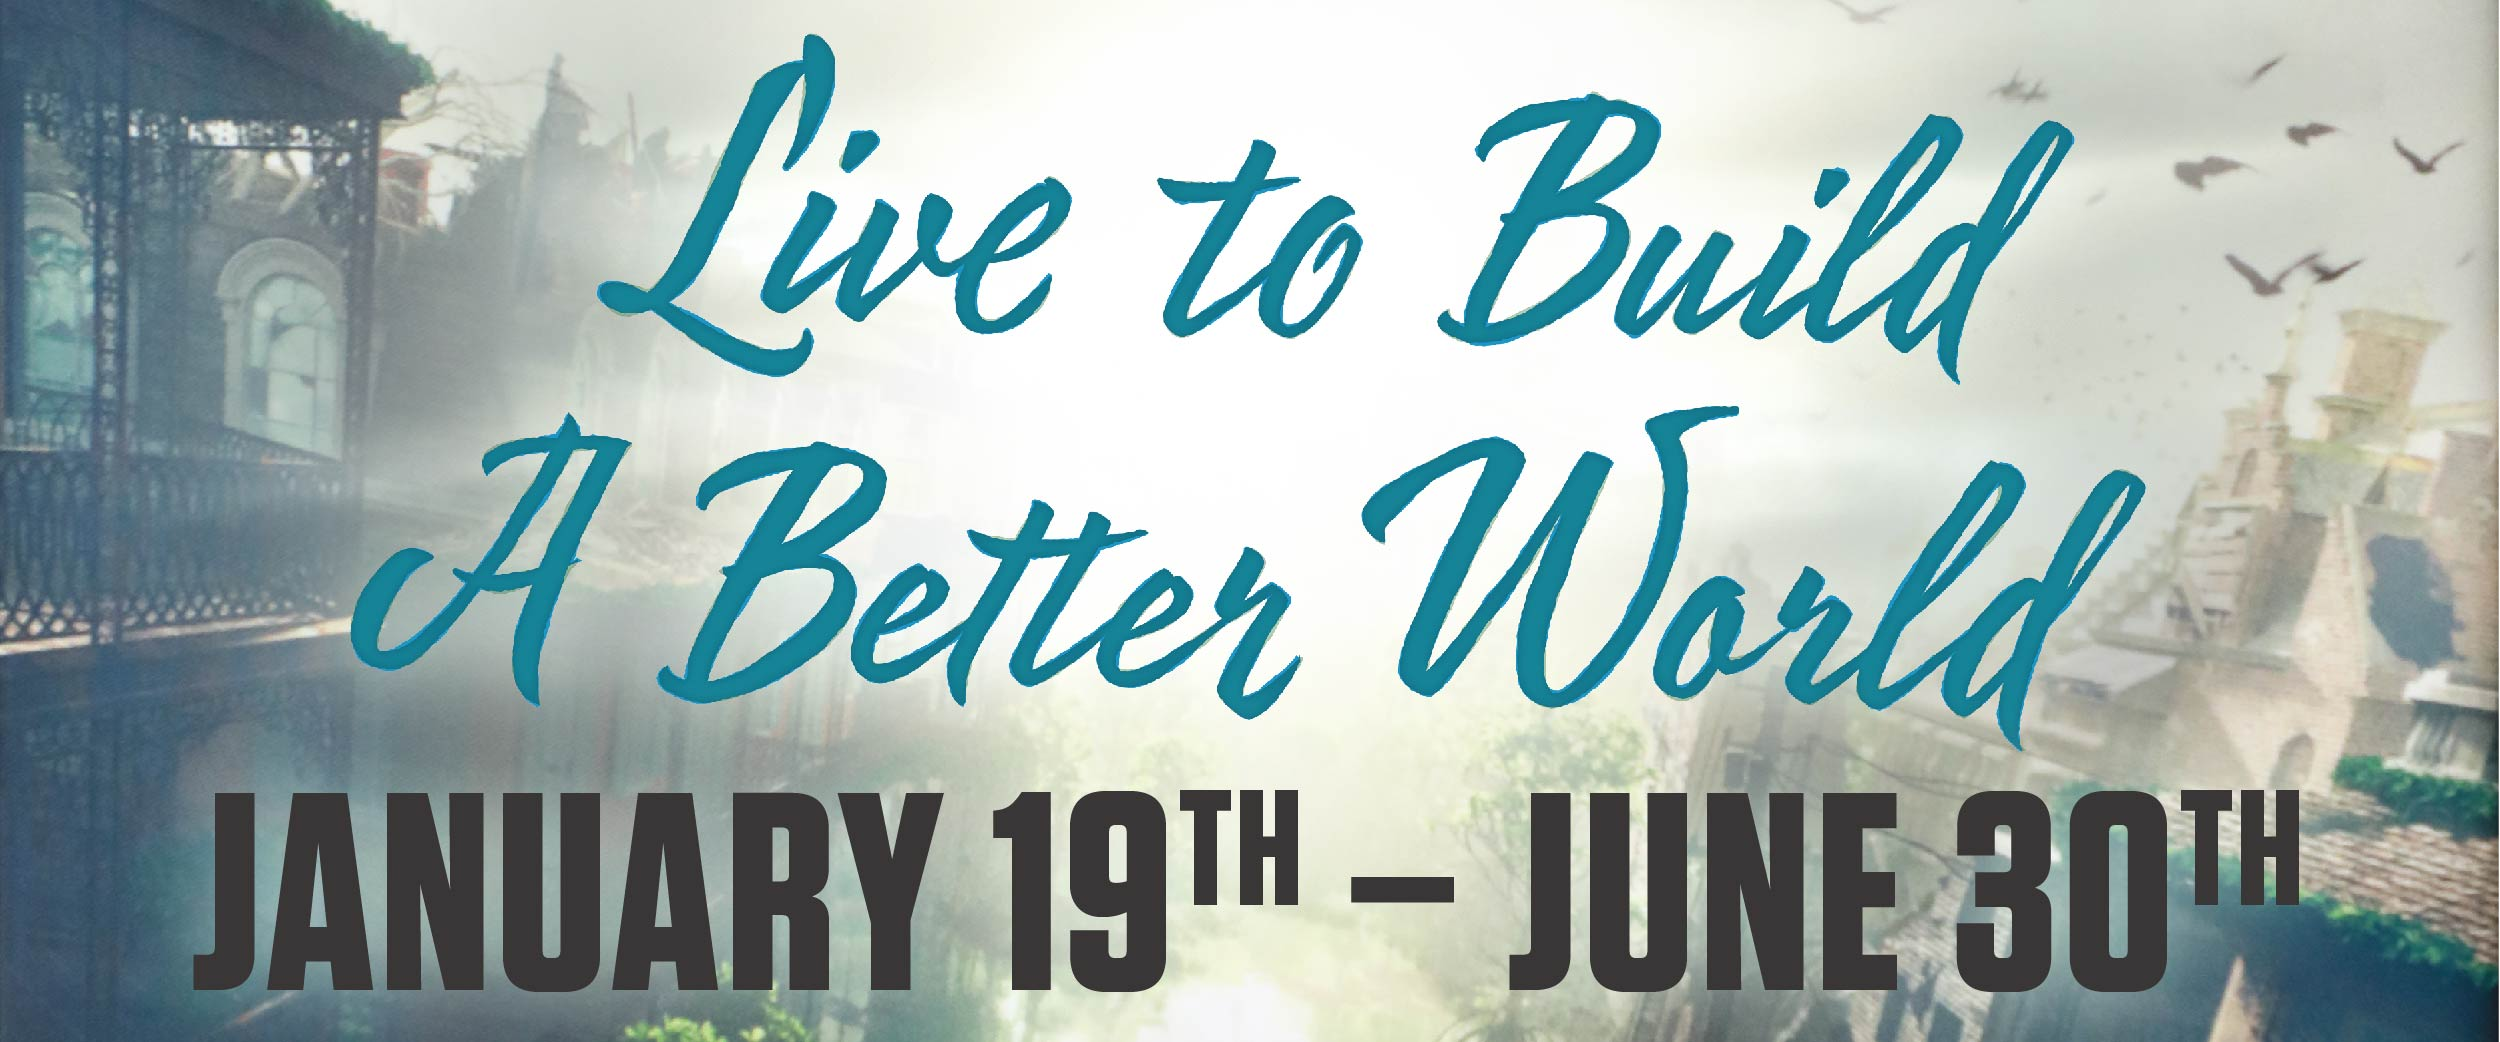 Live to Build a Better World exhibit January 19 - June 30